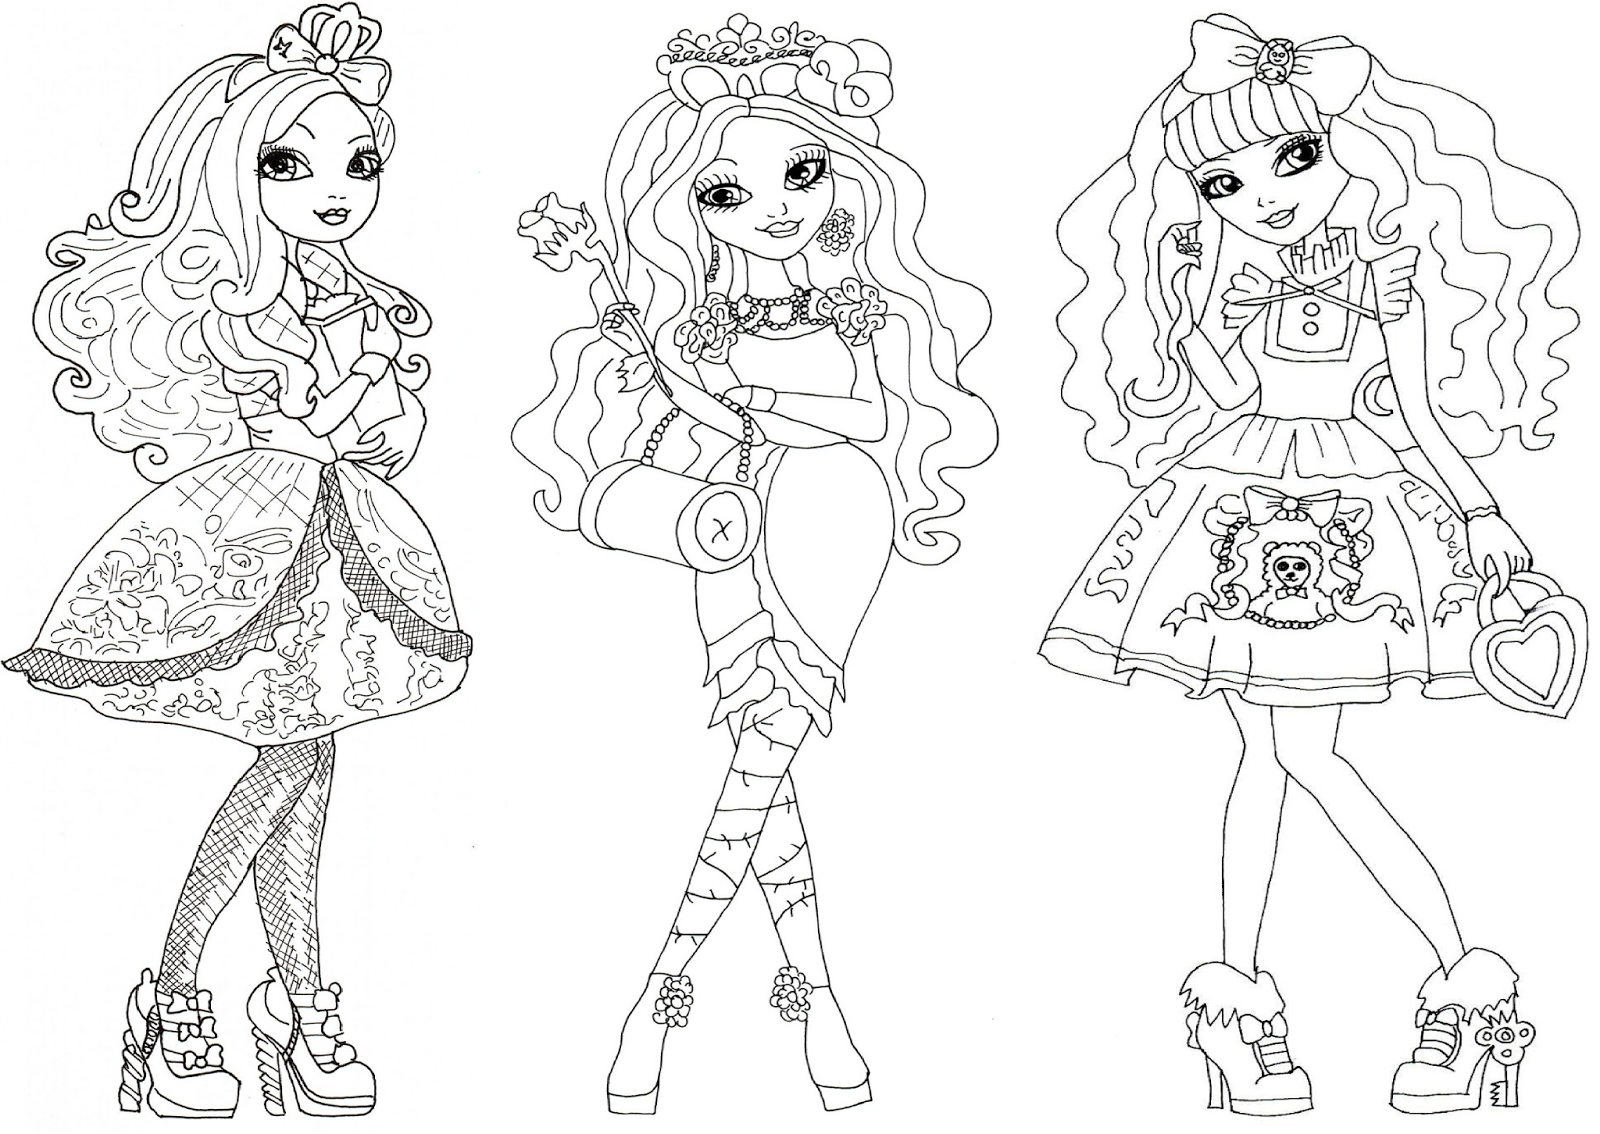 Free Printable Ever After High Coloring Pages: October 2015